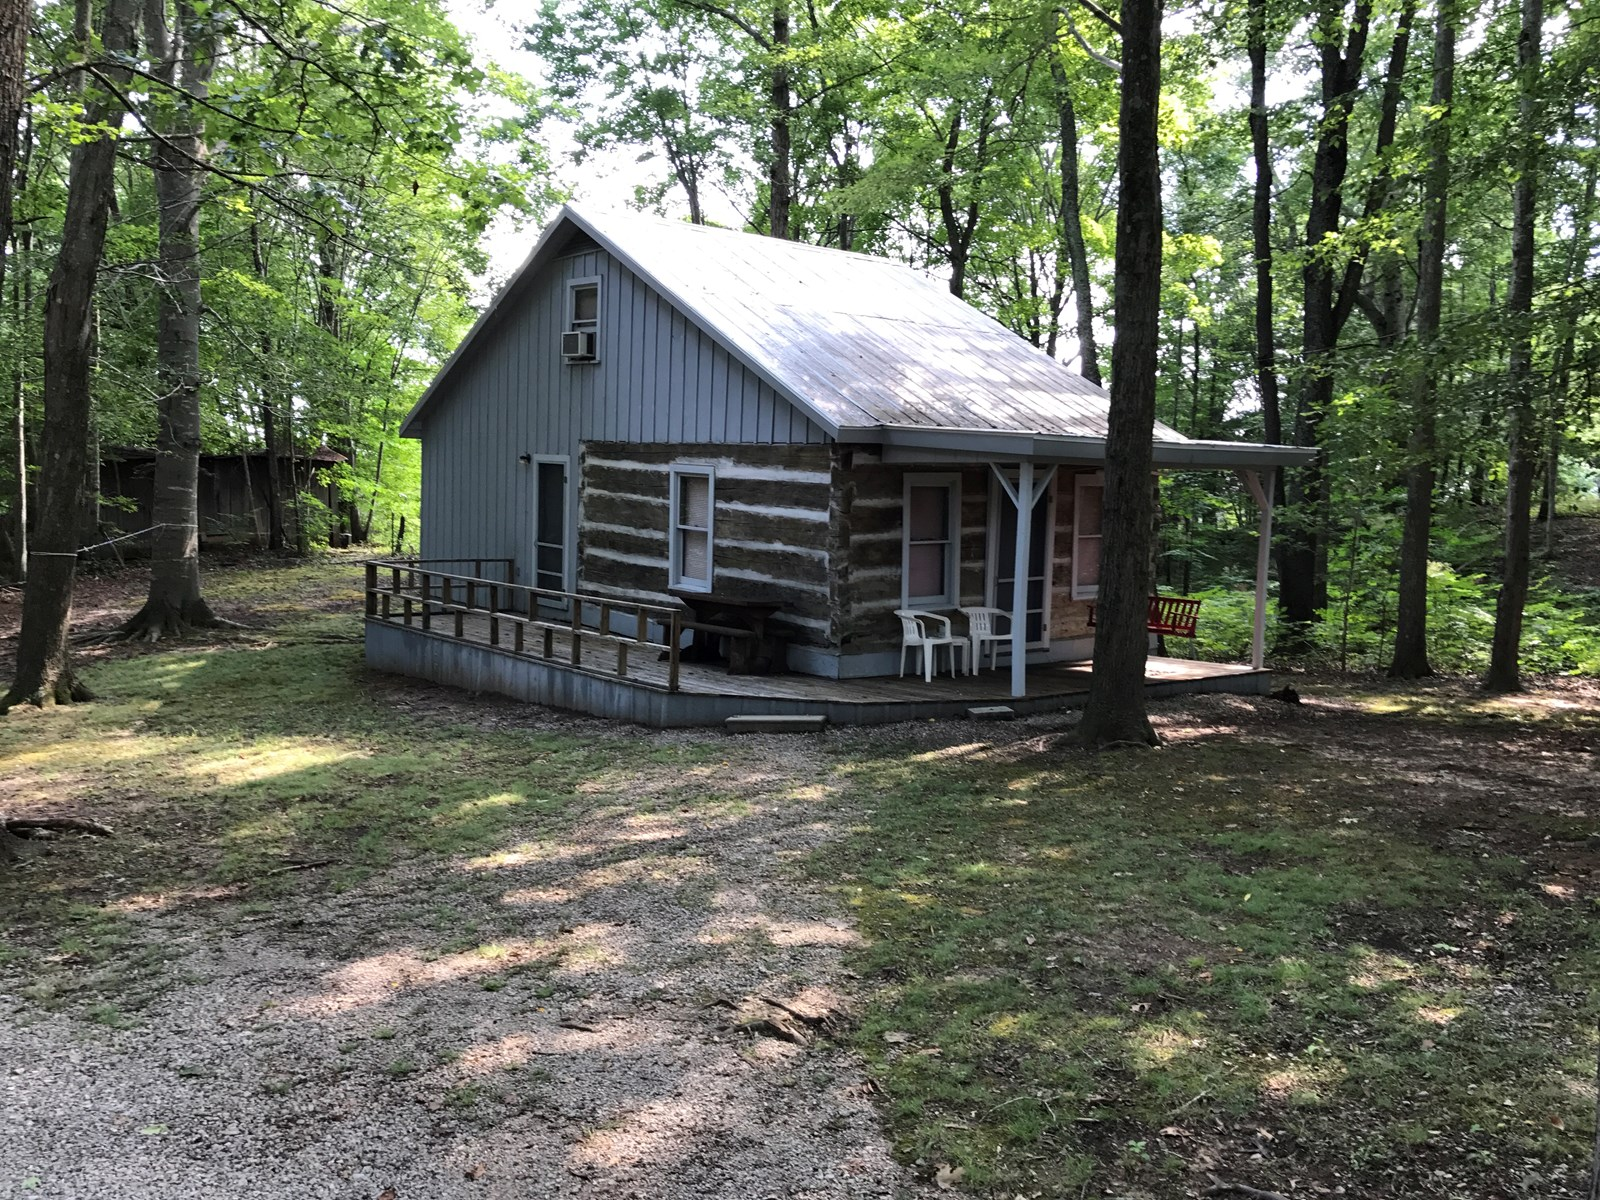 PENDING!!! Country log home for sale in Albany, KY